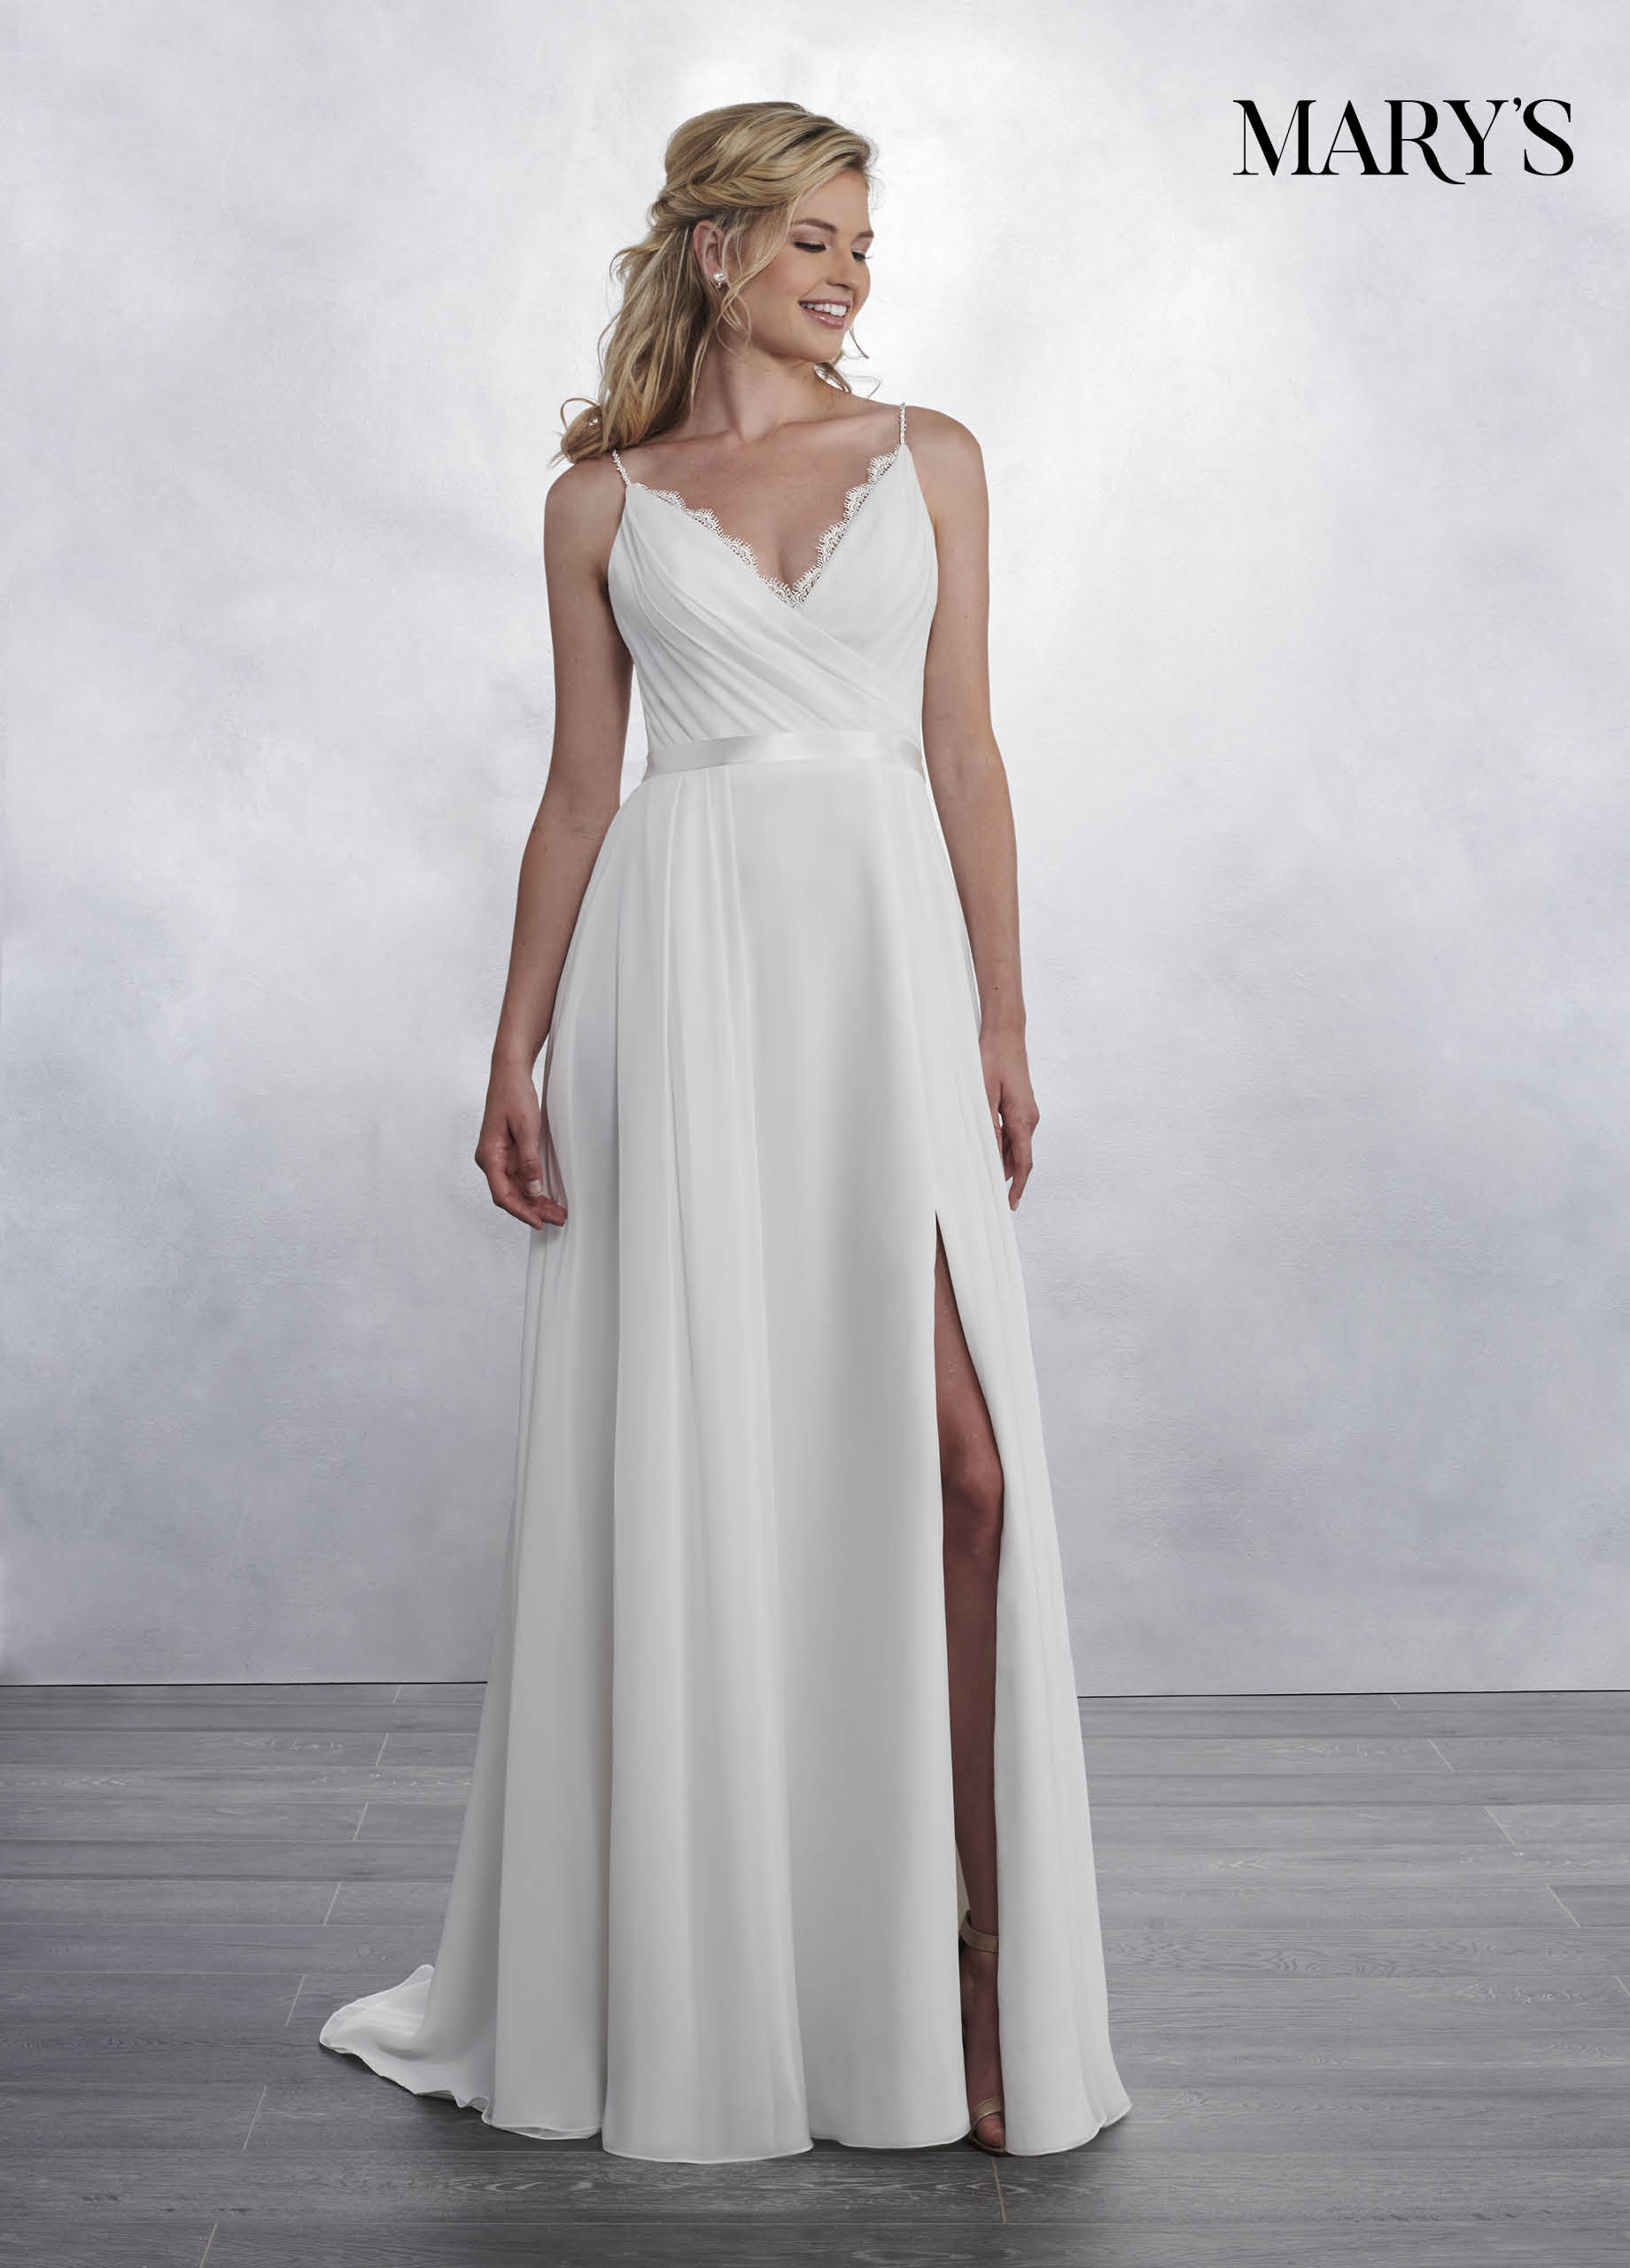 Bridal Wedding Dresses | Mary's | Style - MB1025